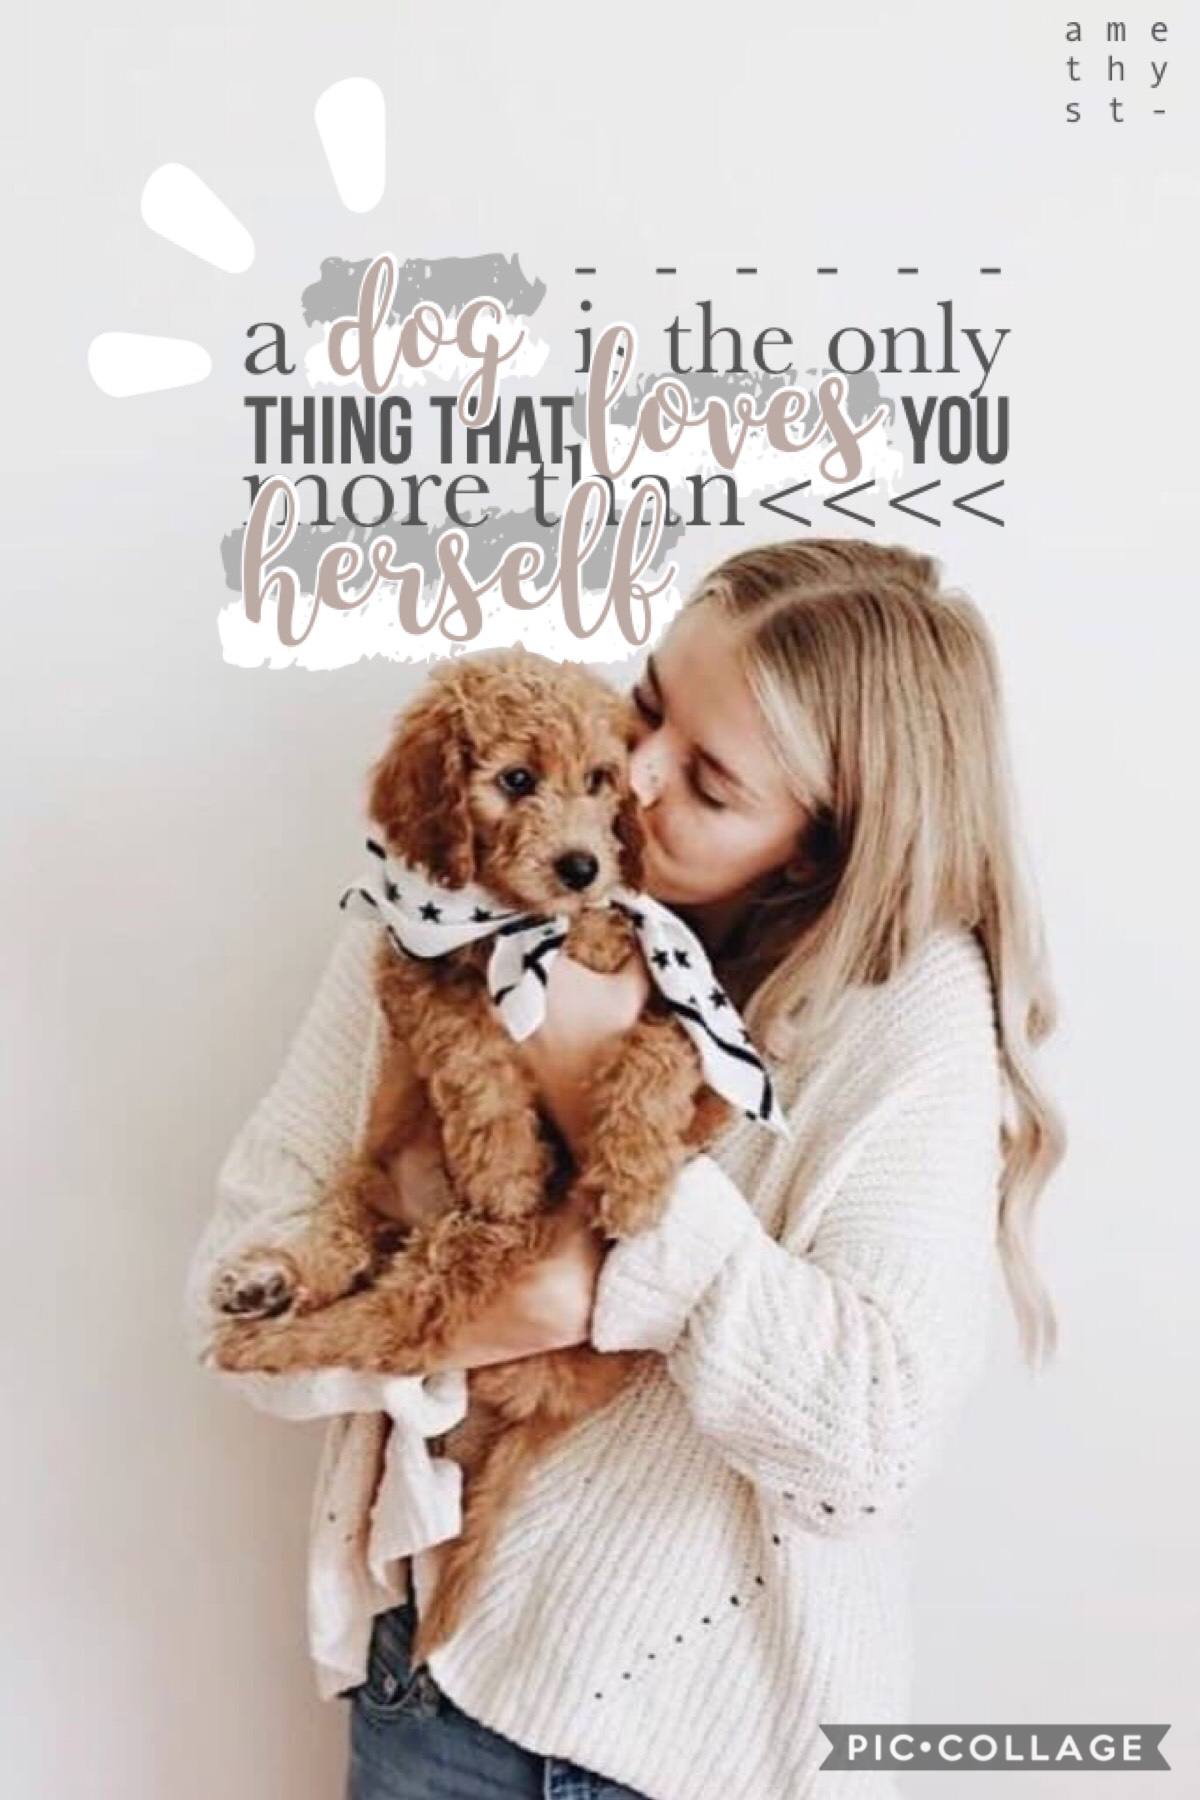 "Yup, I changed this quote! It originally was ""a dog is the only thing that loves you more than himself"" but I changed it to HERSELF! #GirlPower 💪👩💪😂 QOTD: any pets? AOTD: yup, two dogs and a cat 🐶🐱"